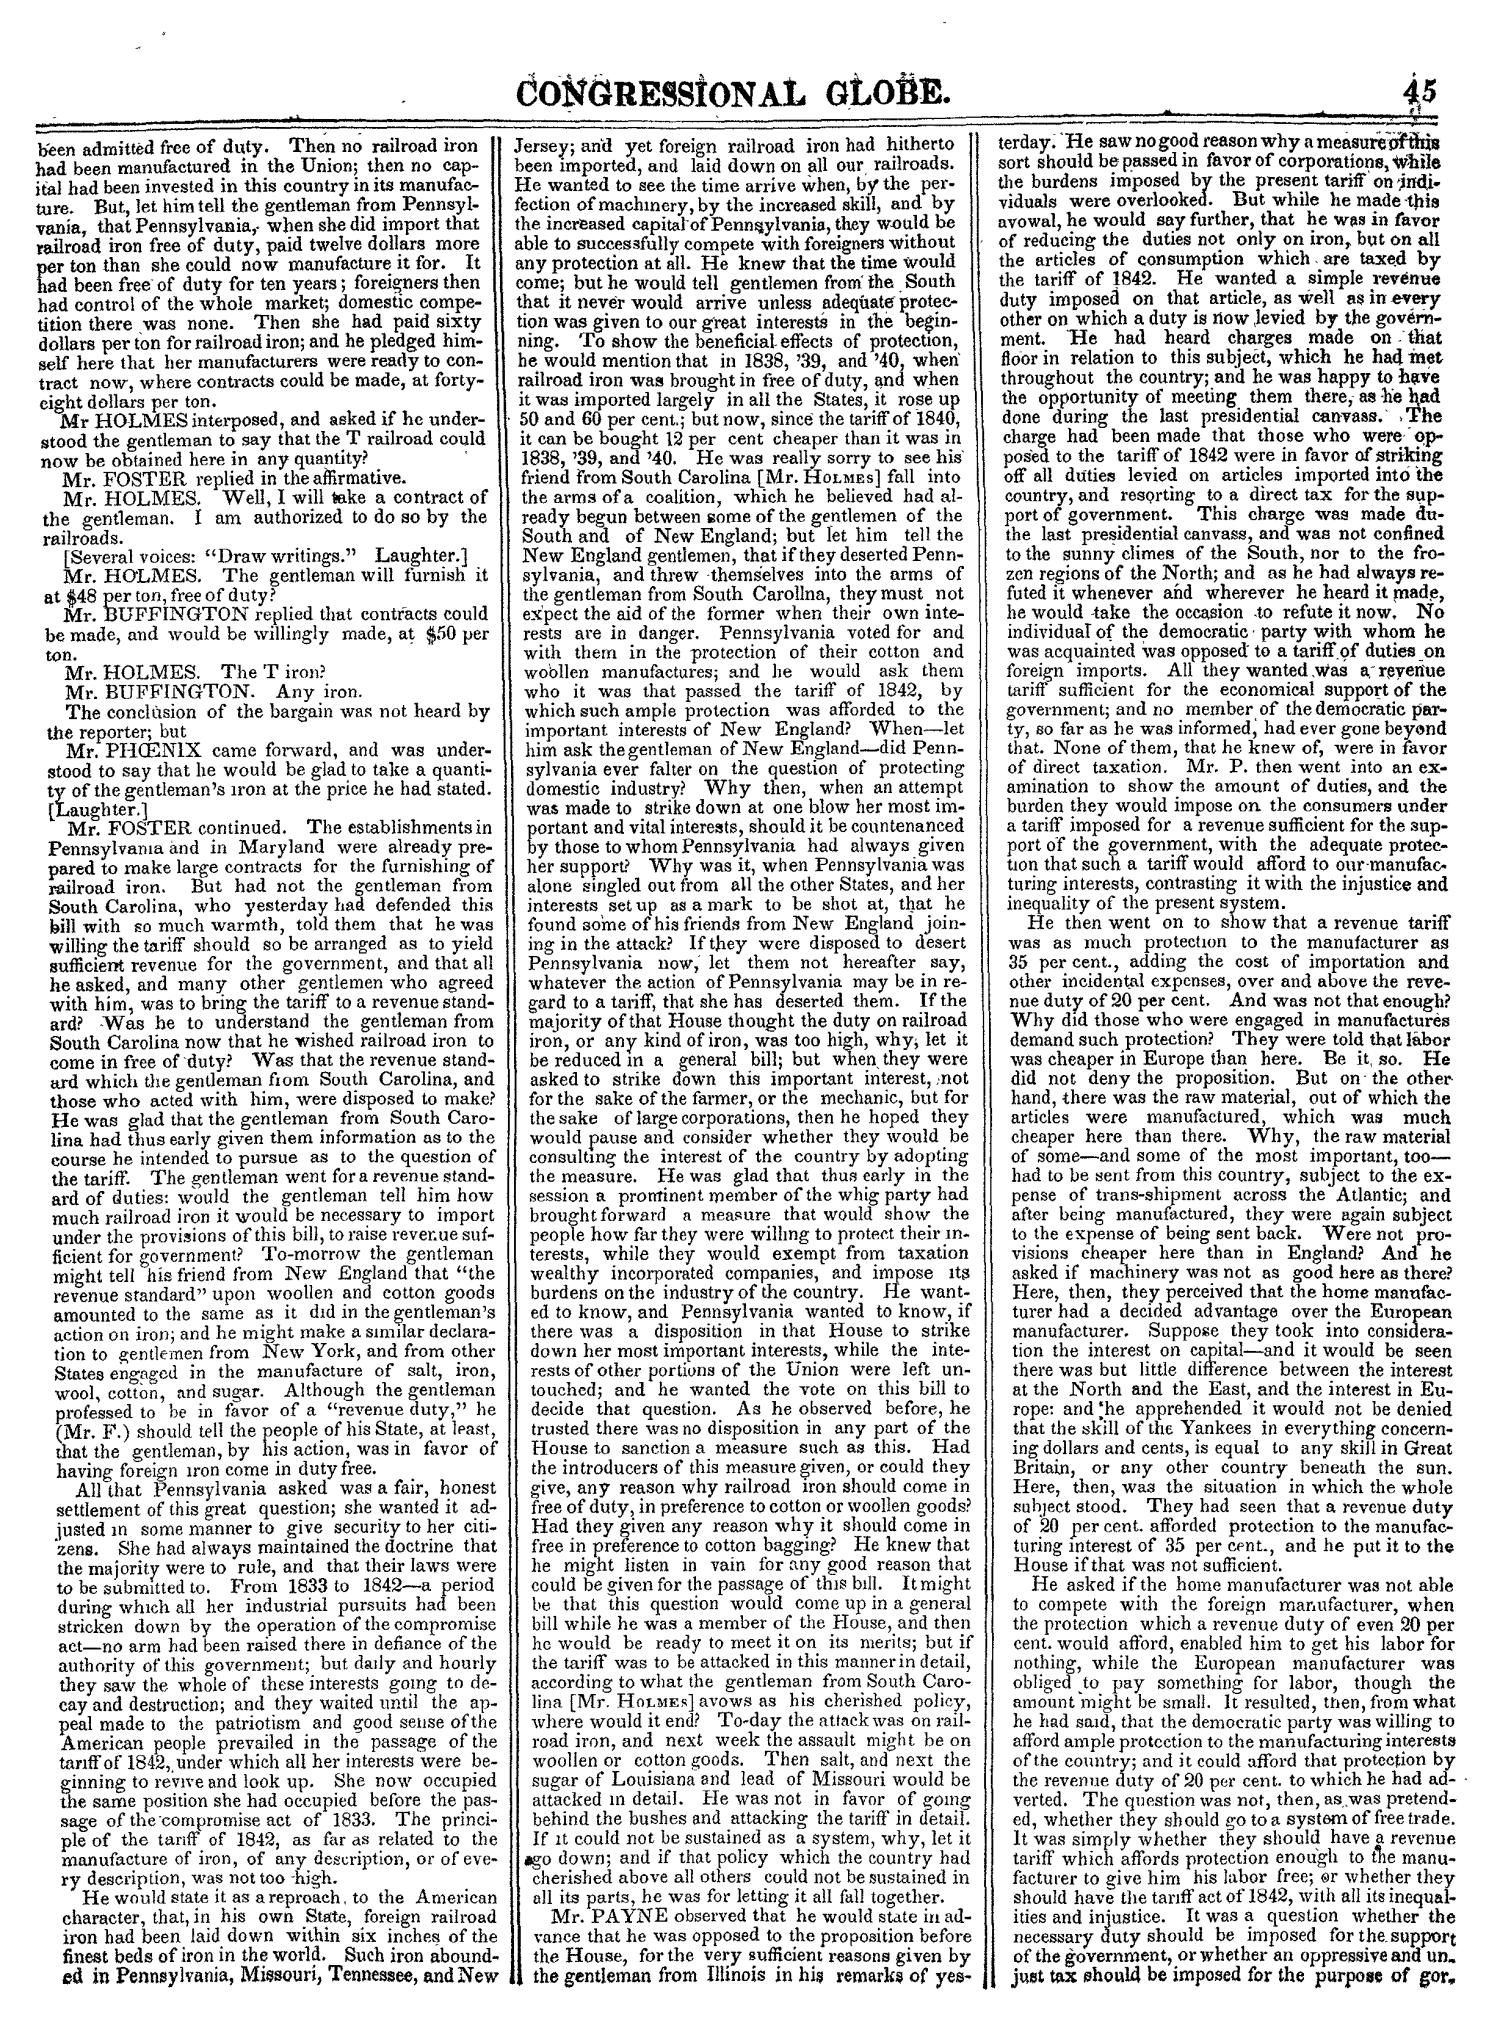 The Congressional Globe, Volume 14: Twenty-Eighth Congress, Second Session                                                                                                      45